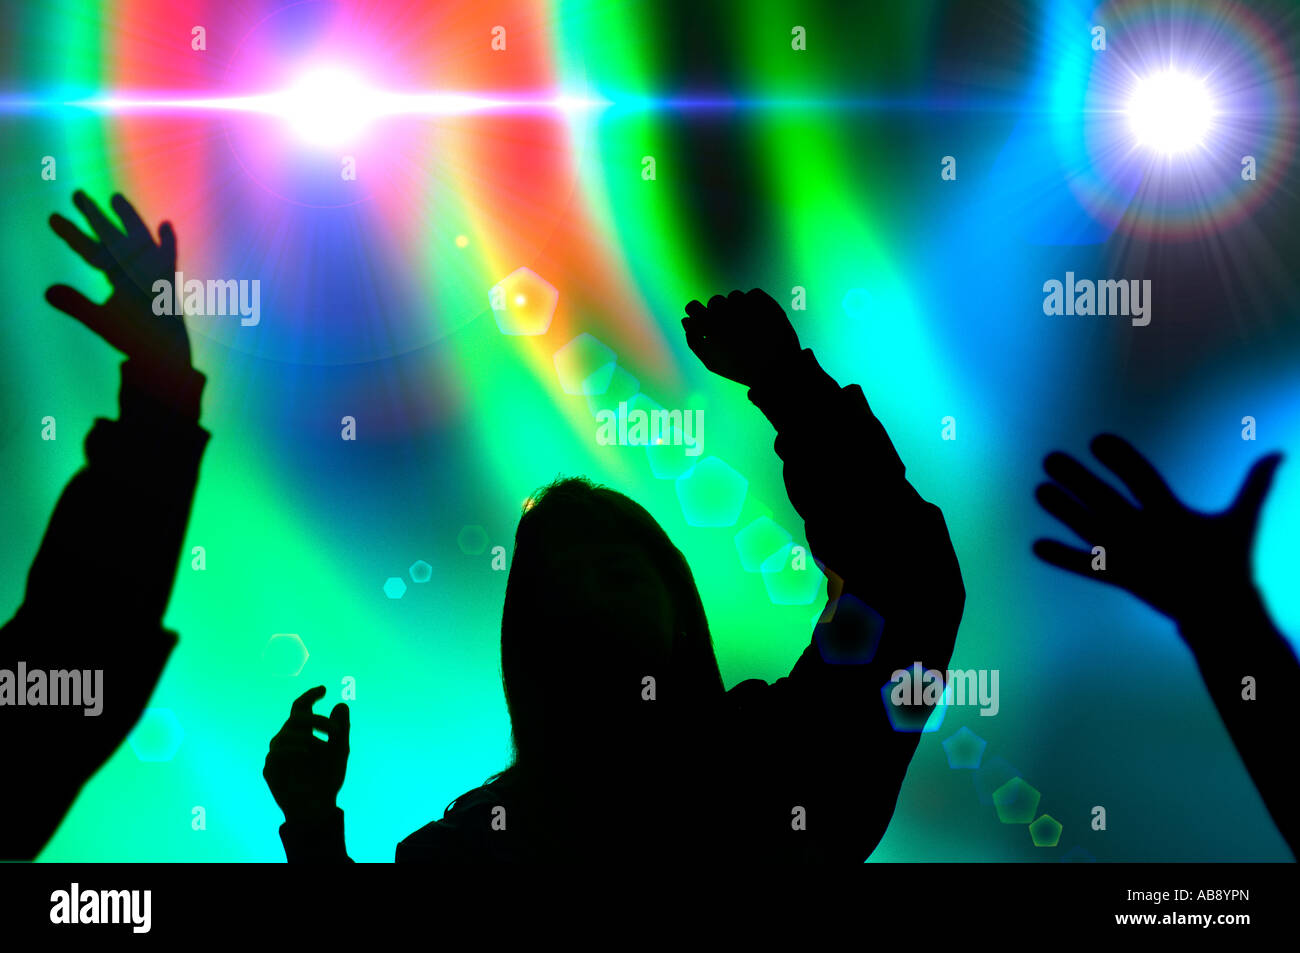 Rave Stock Photos & Rave Stock Images - Alamy